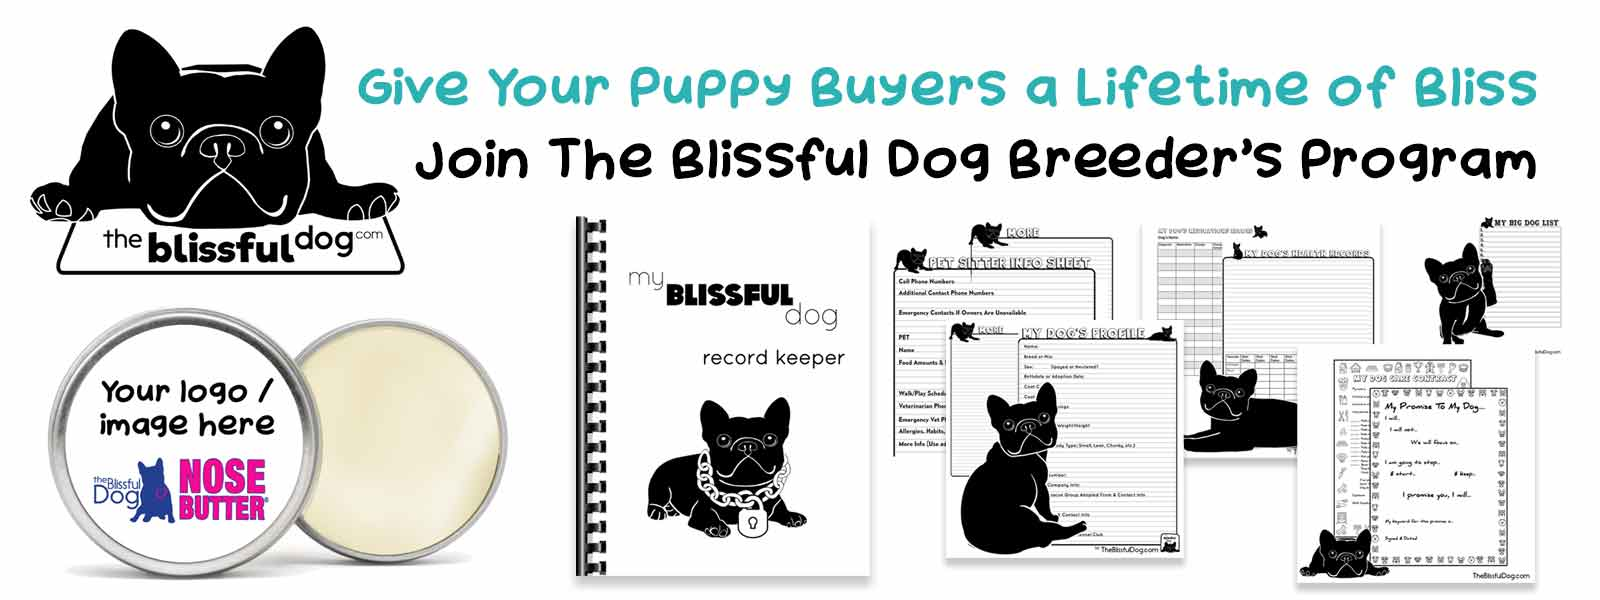 The Blissful Dog breeders program